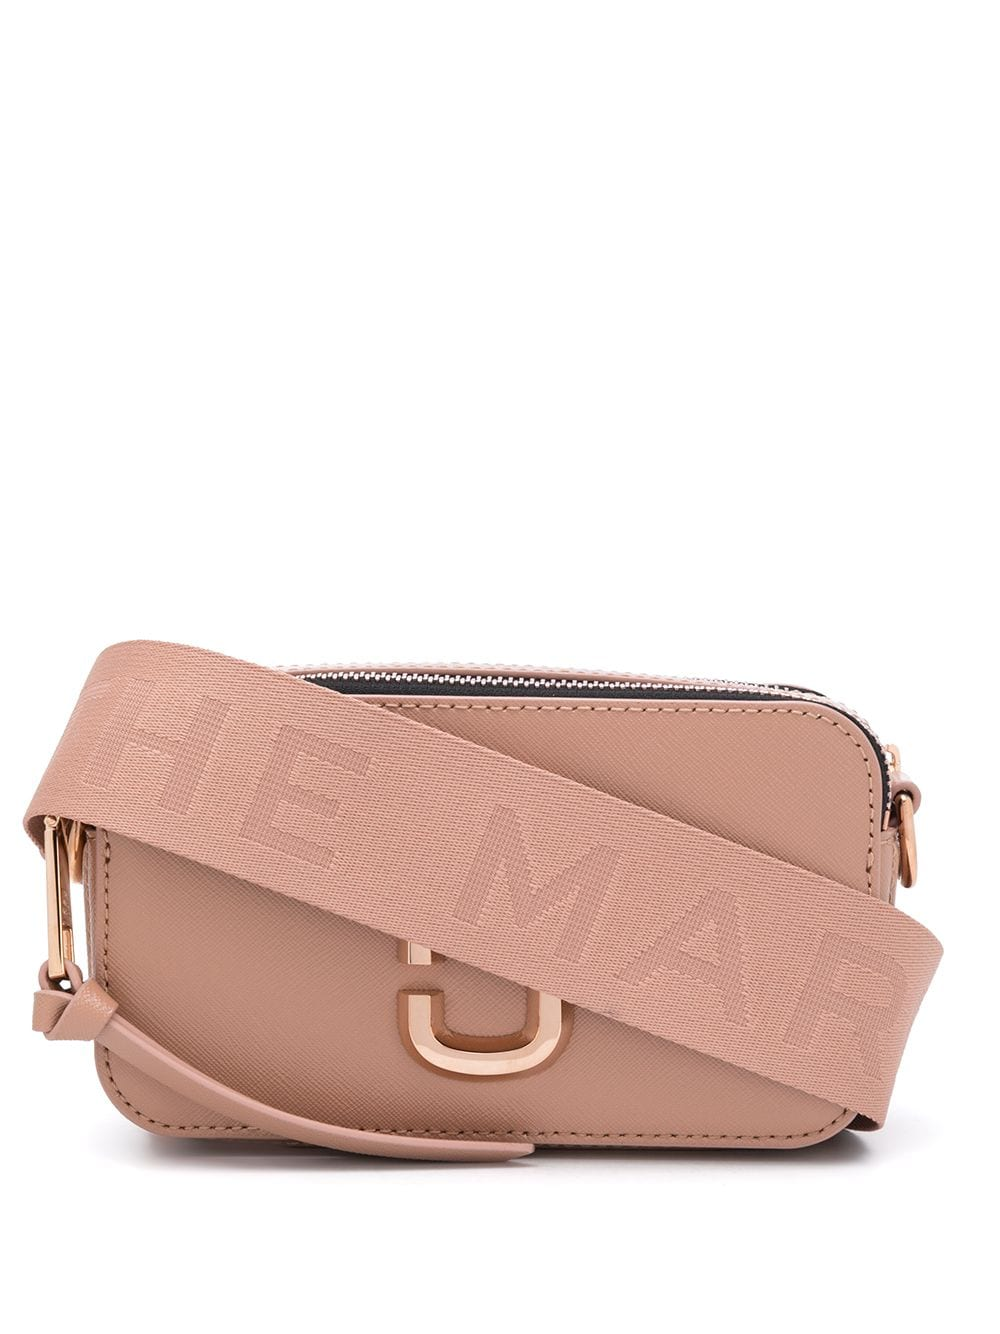 Snapshot Leather Crossbody Bag